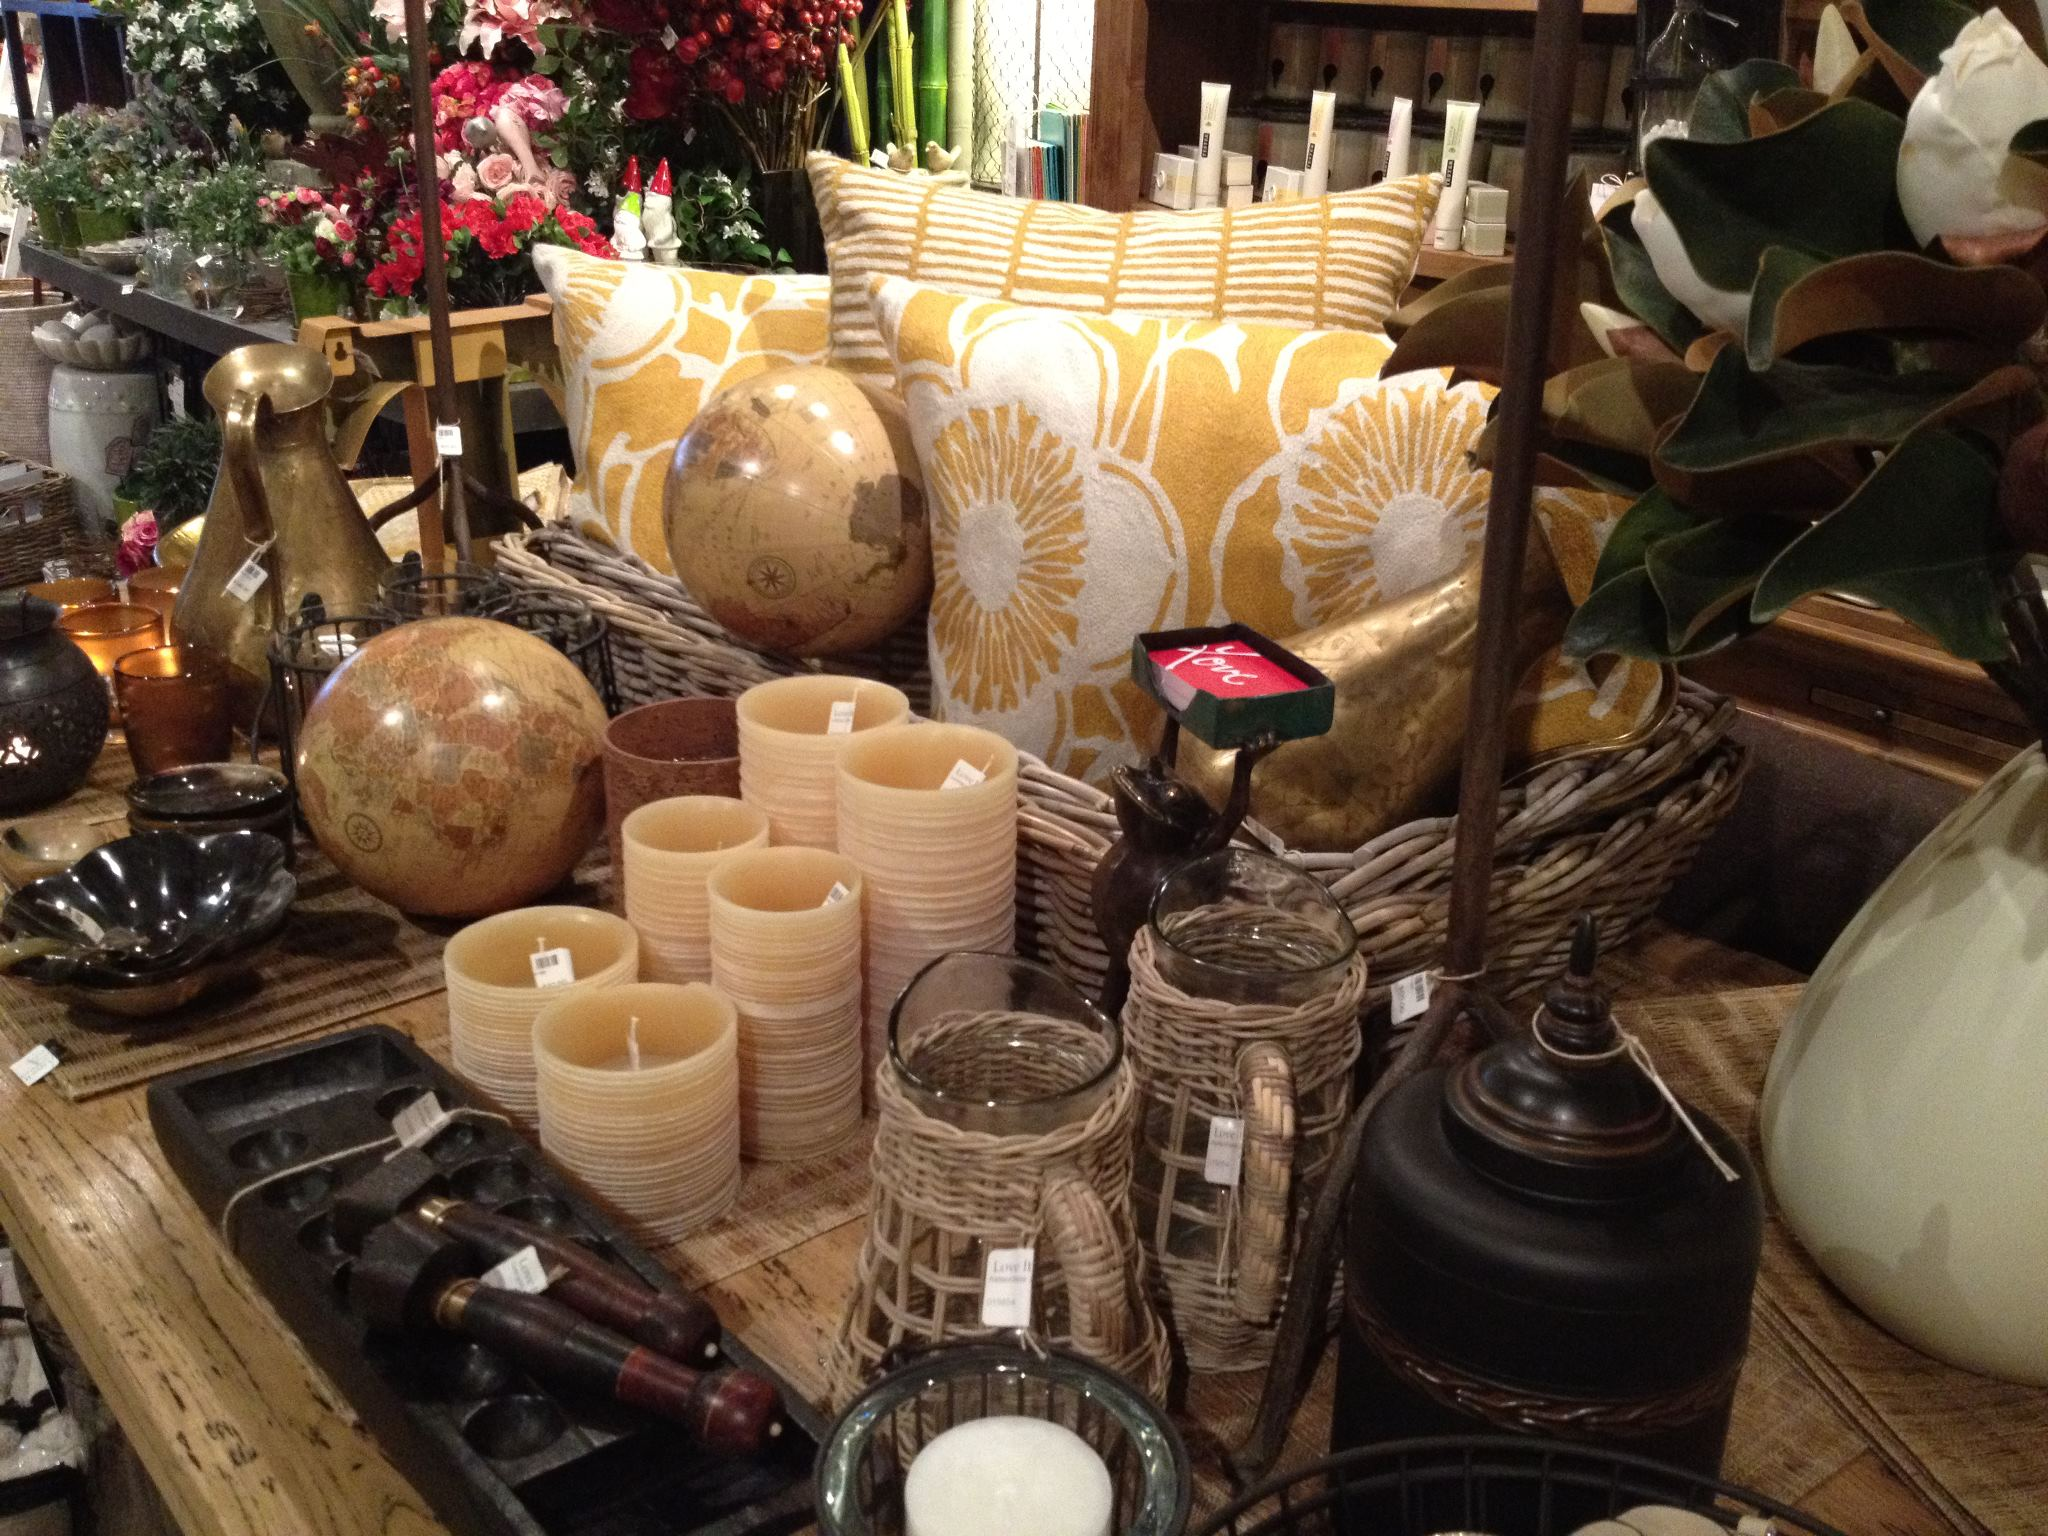 retail-gift-homewares-and-furniture-business-for-sale-3